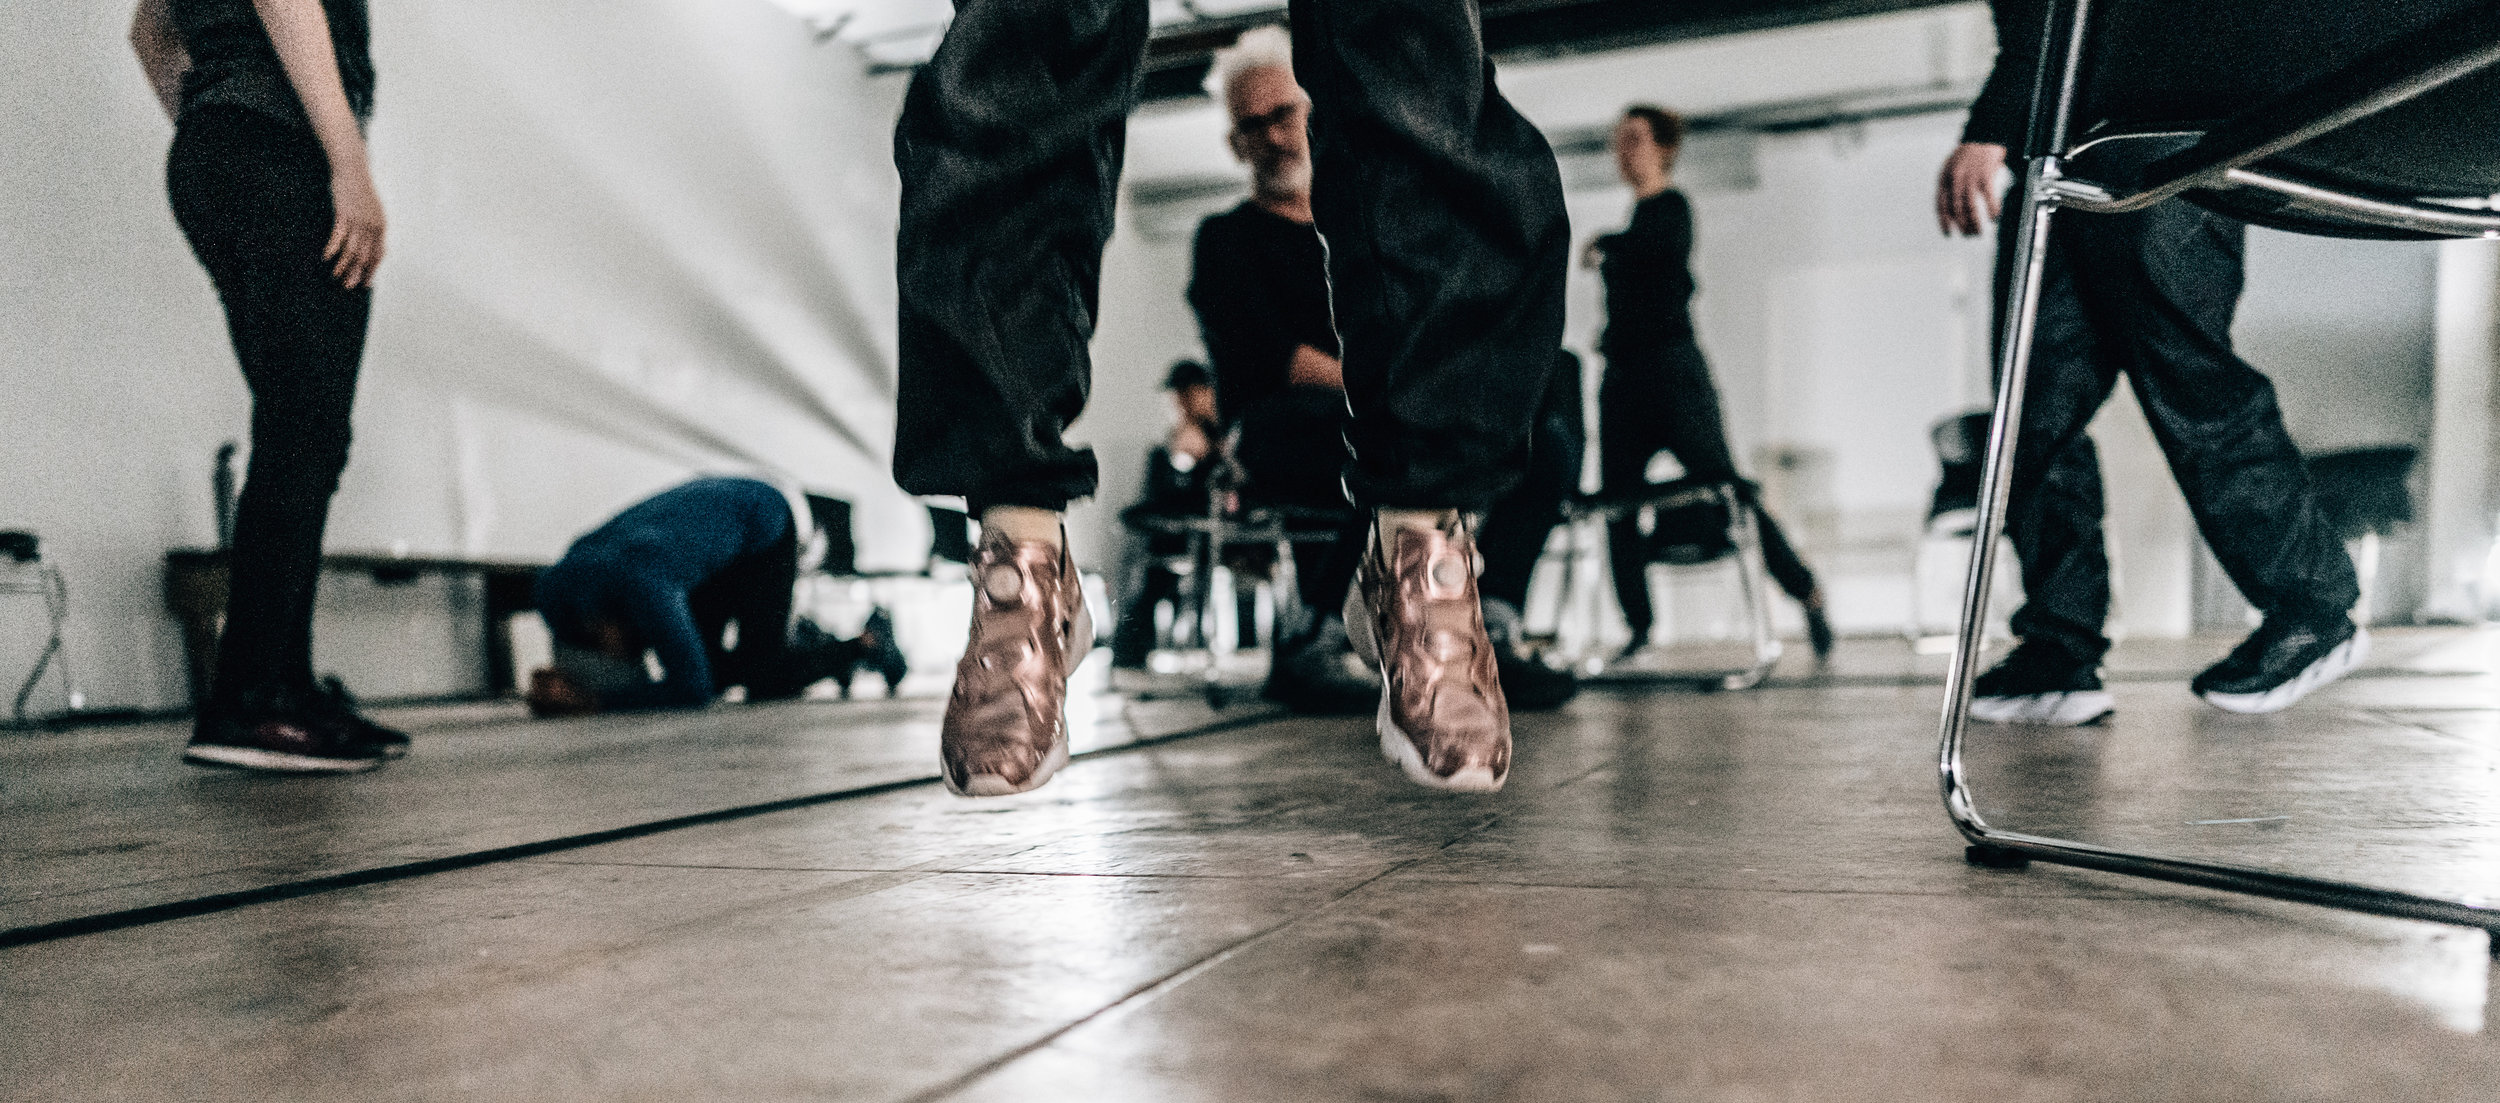 Legs in metallic pink shoes jump out of frame on concrete floor, legs apart. In background Jess Curtis looks at camera through the open legs. Others stand, crawl behind. (photo: Robbie Sweeny)